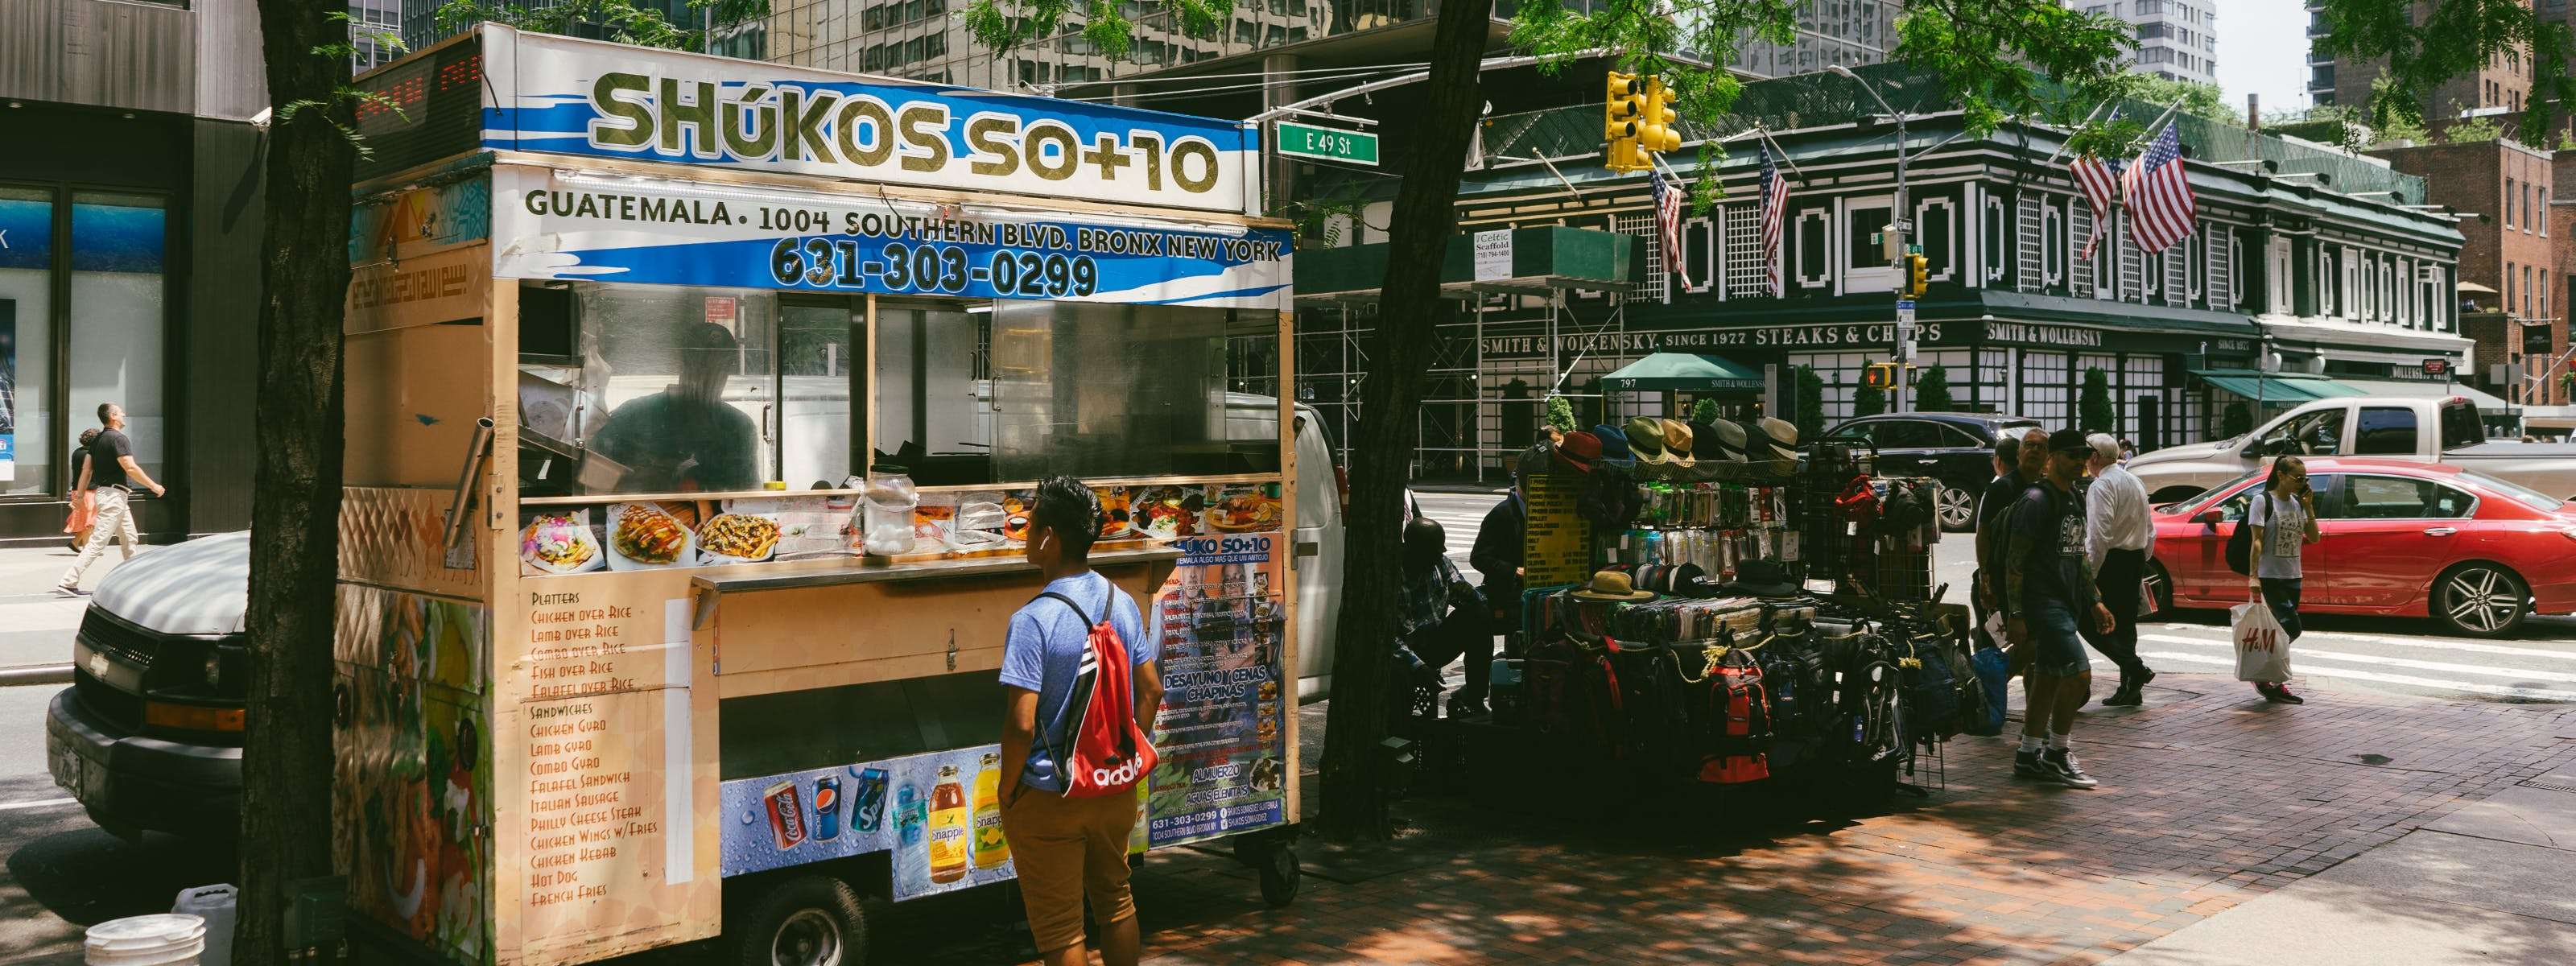 The Best Food Trucks & Carts In NYC - New York - The Infatuation